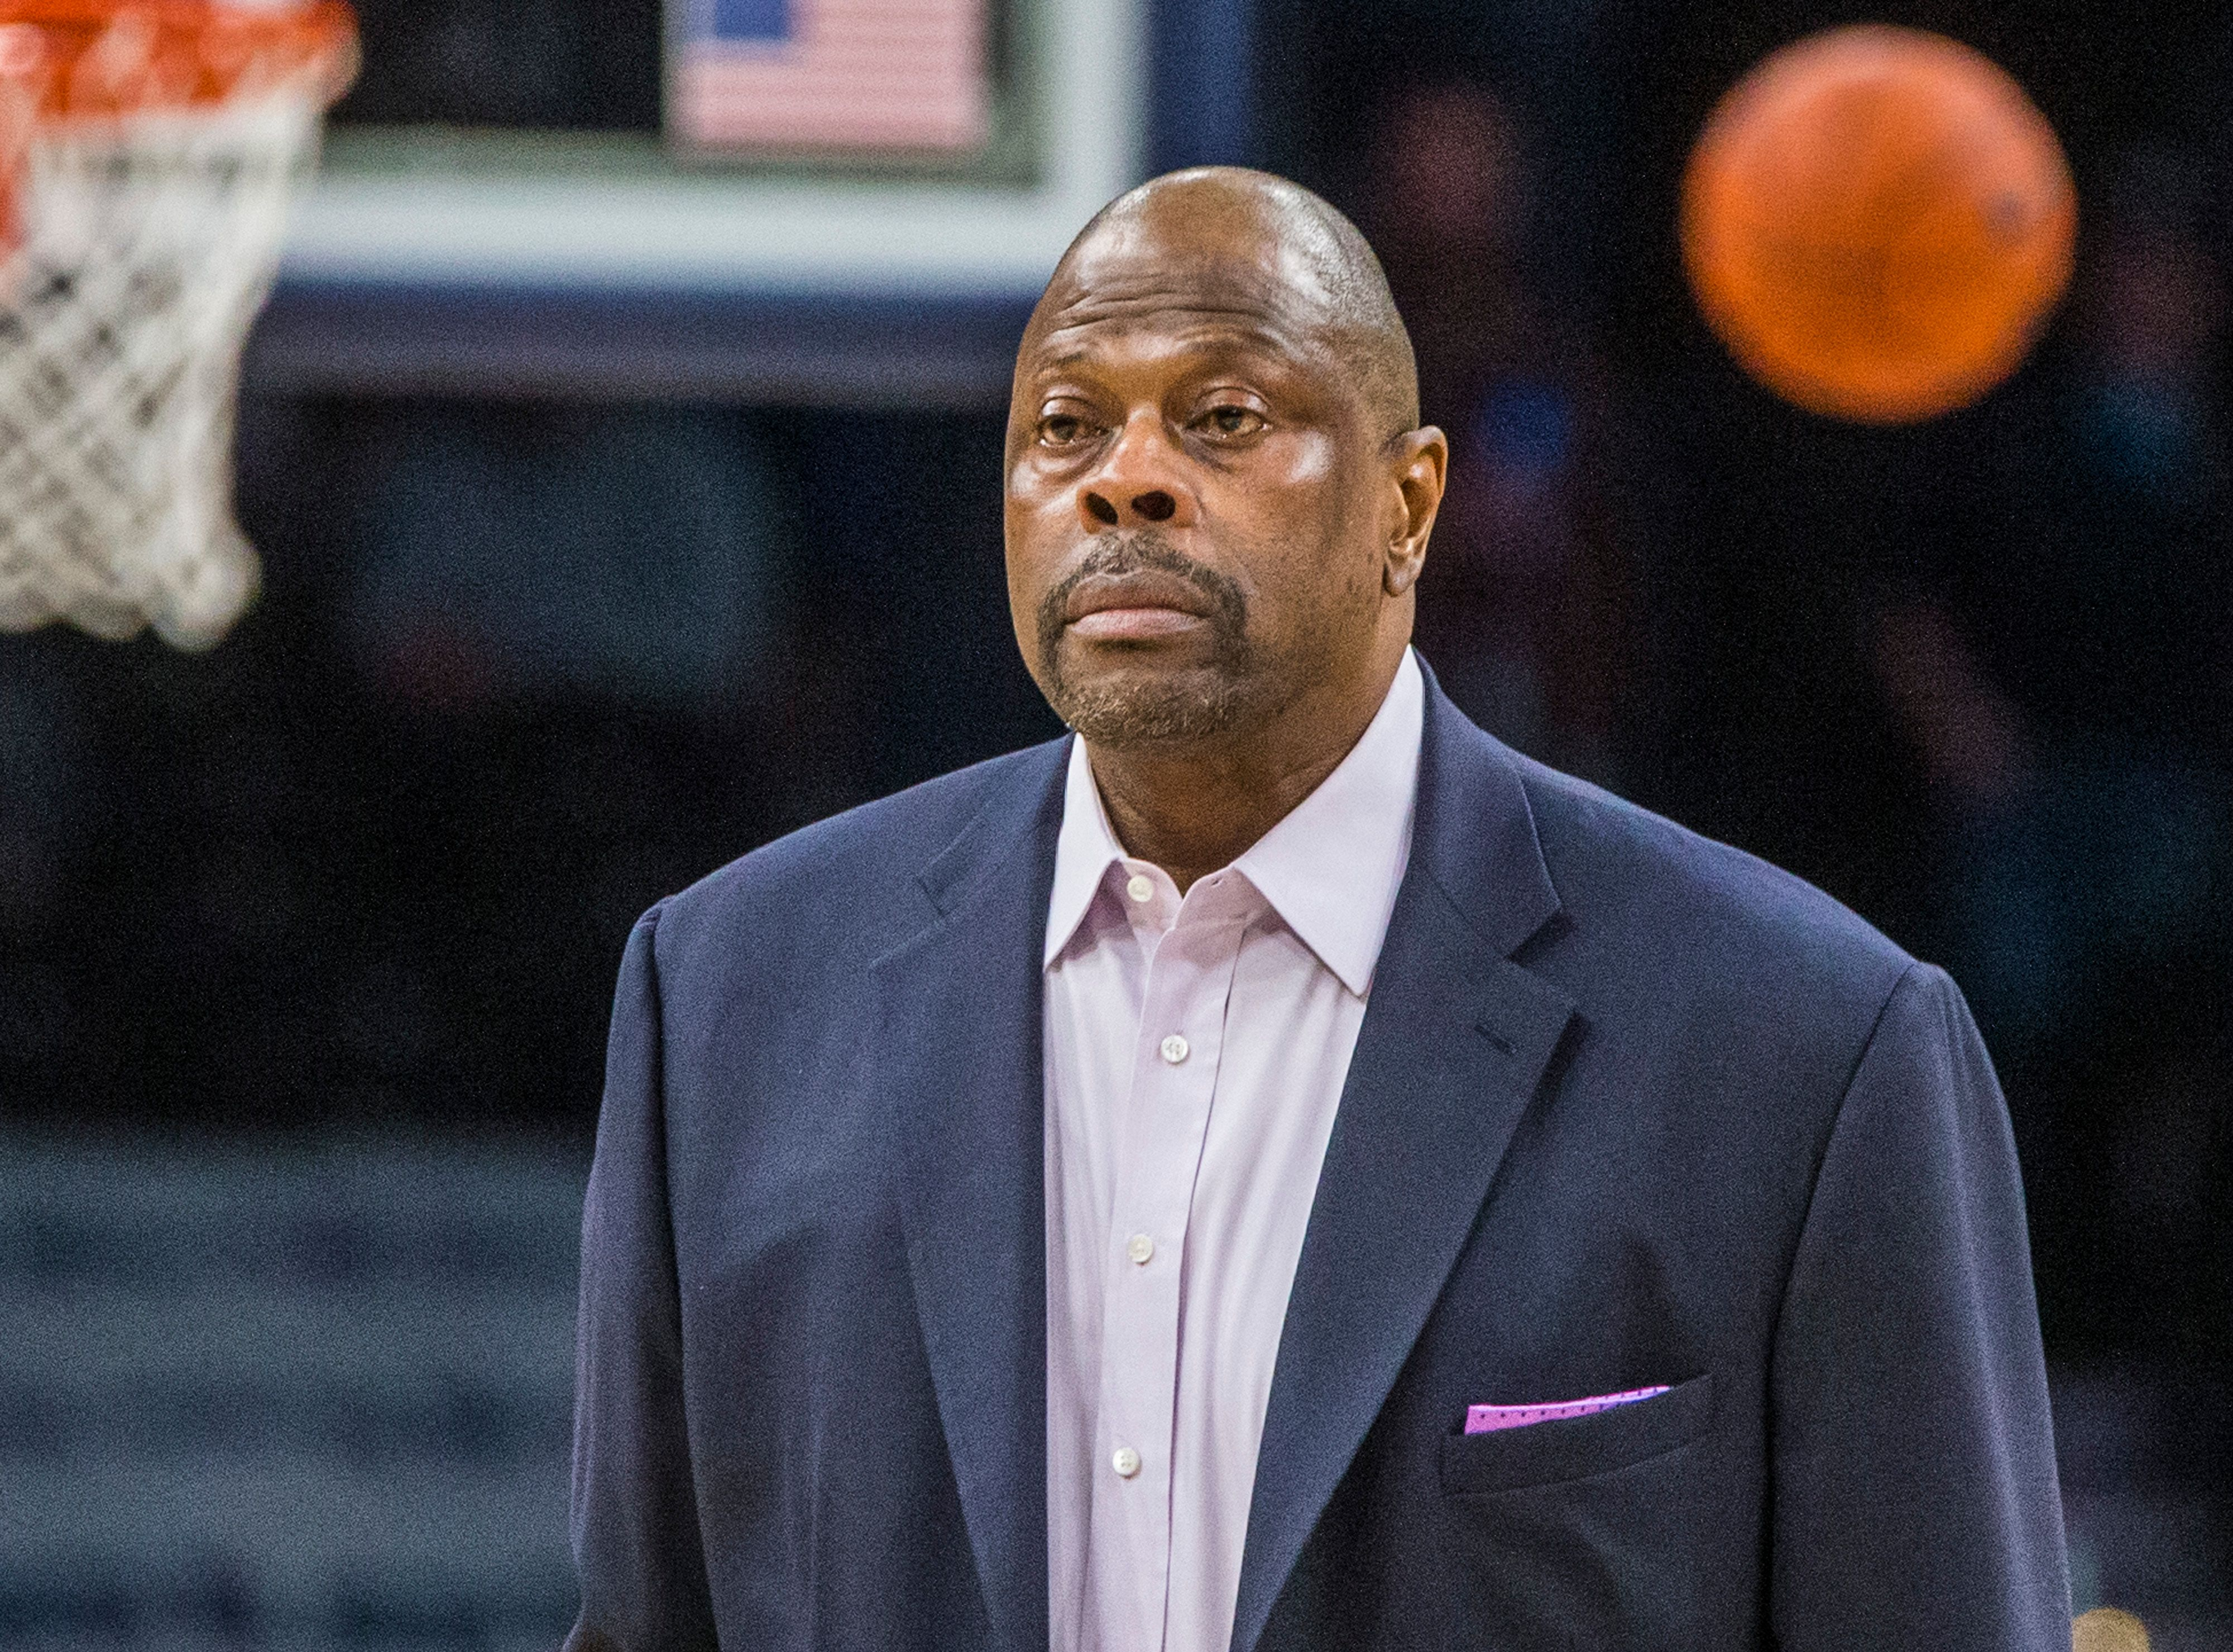 Patrick Ewing during a game between Butler and Georgetown at Capital One Arena on January 28, 2020 in Washington, DC. | Photo: Getty Images